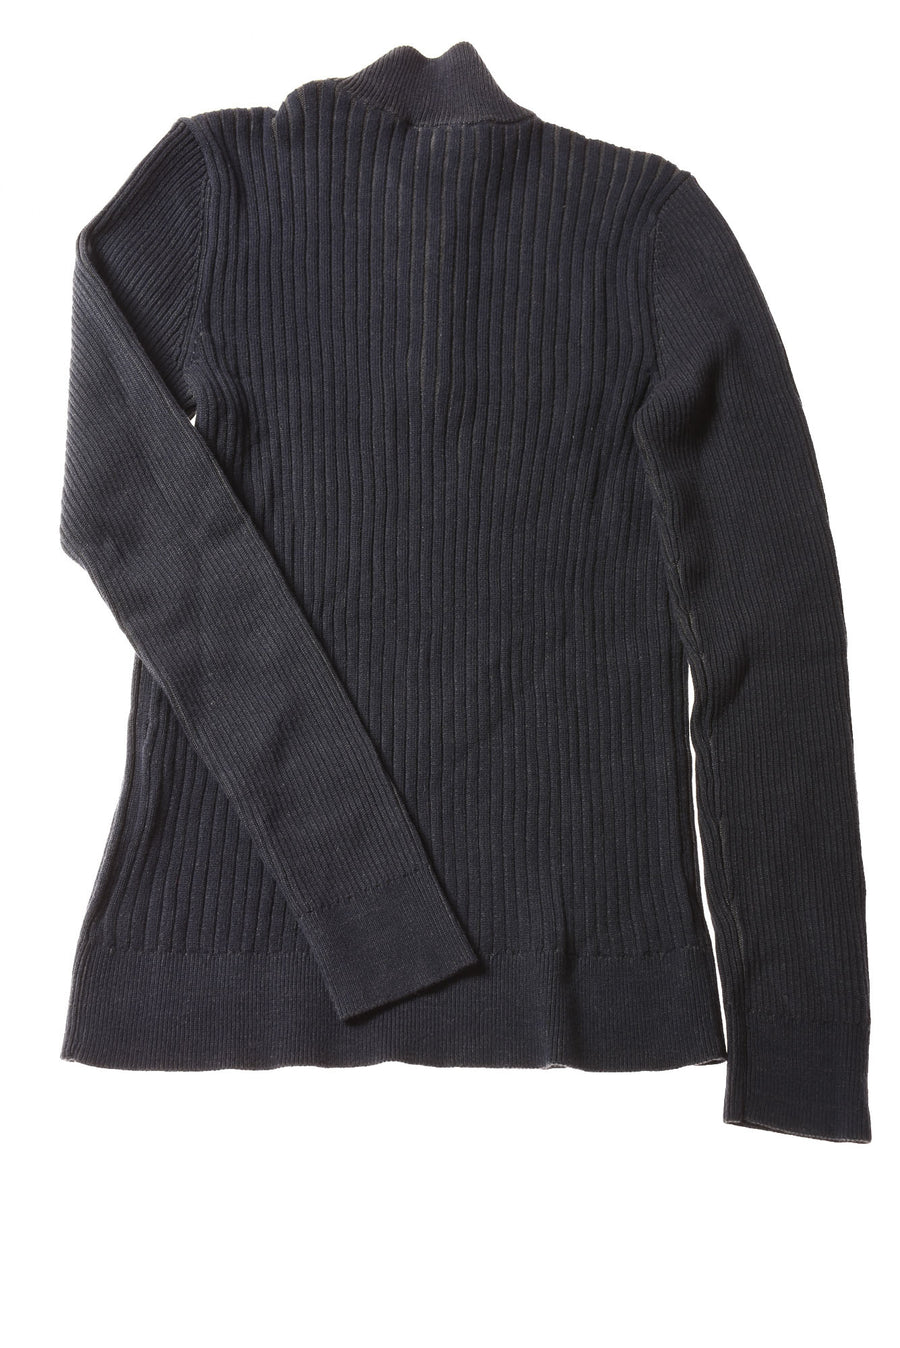 Men's Sweater By Express